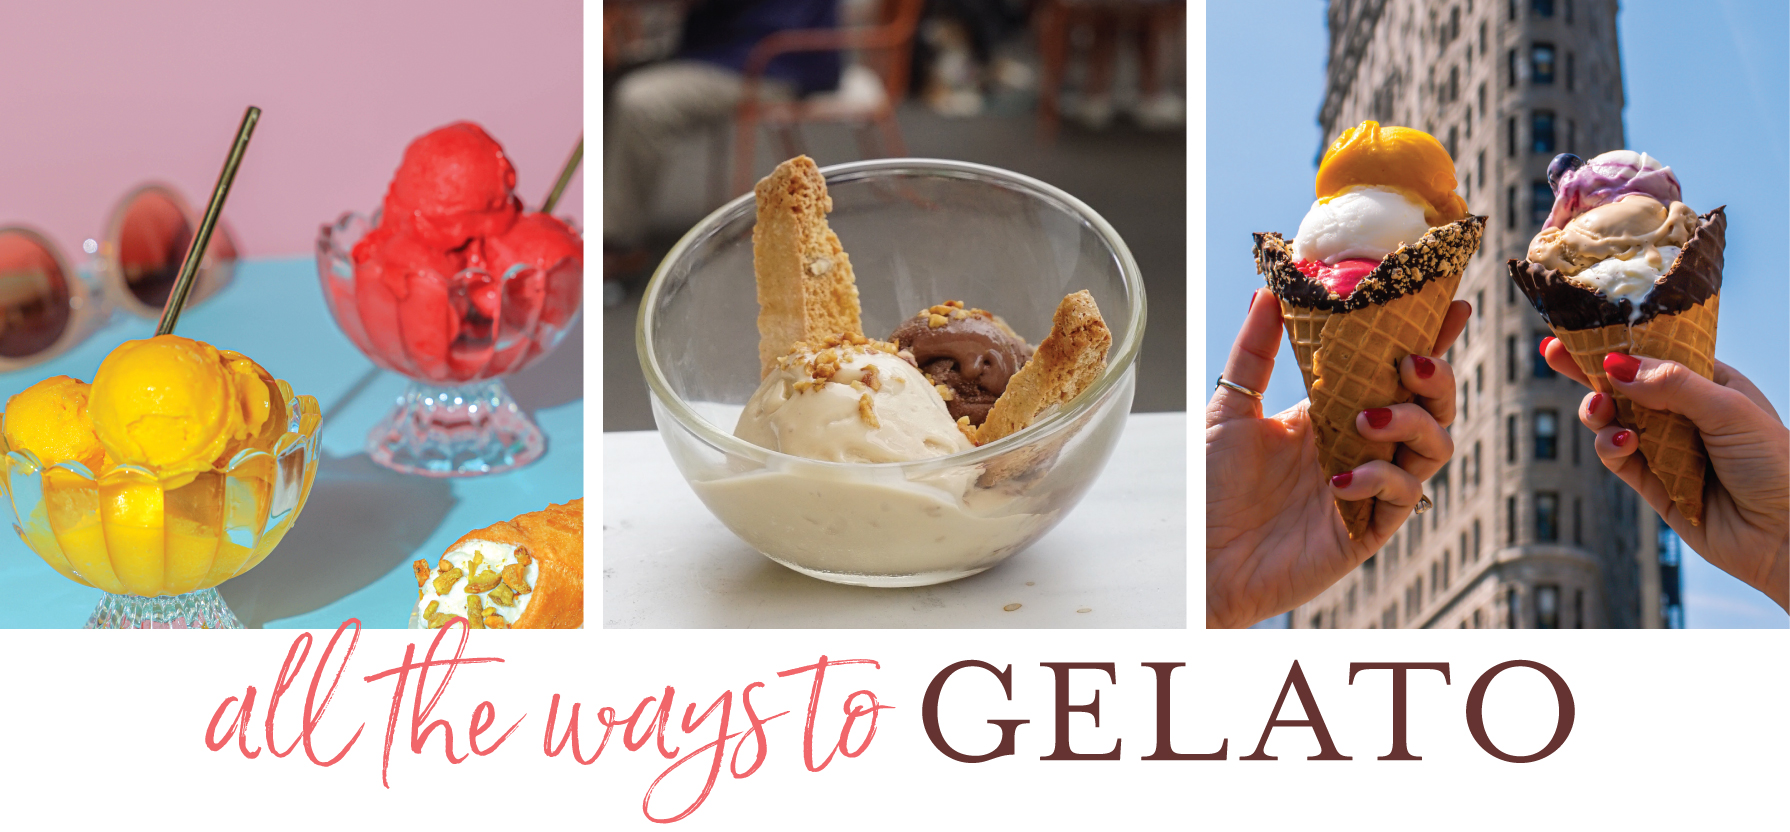 All the Ways to Gelato in NYC